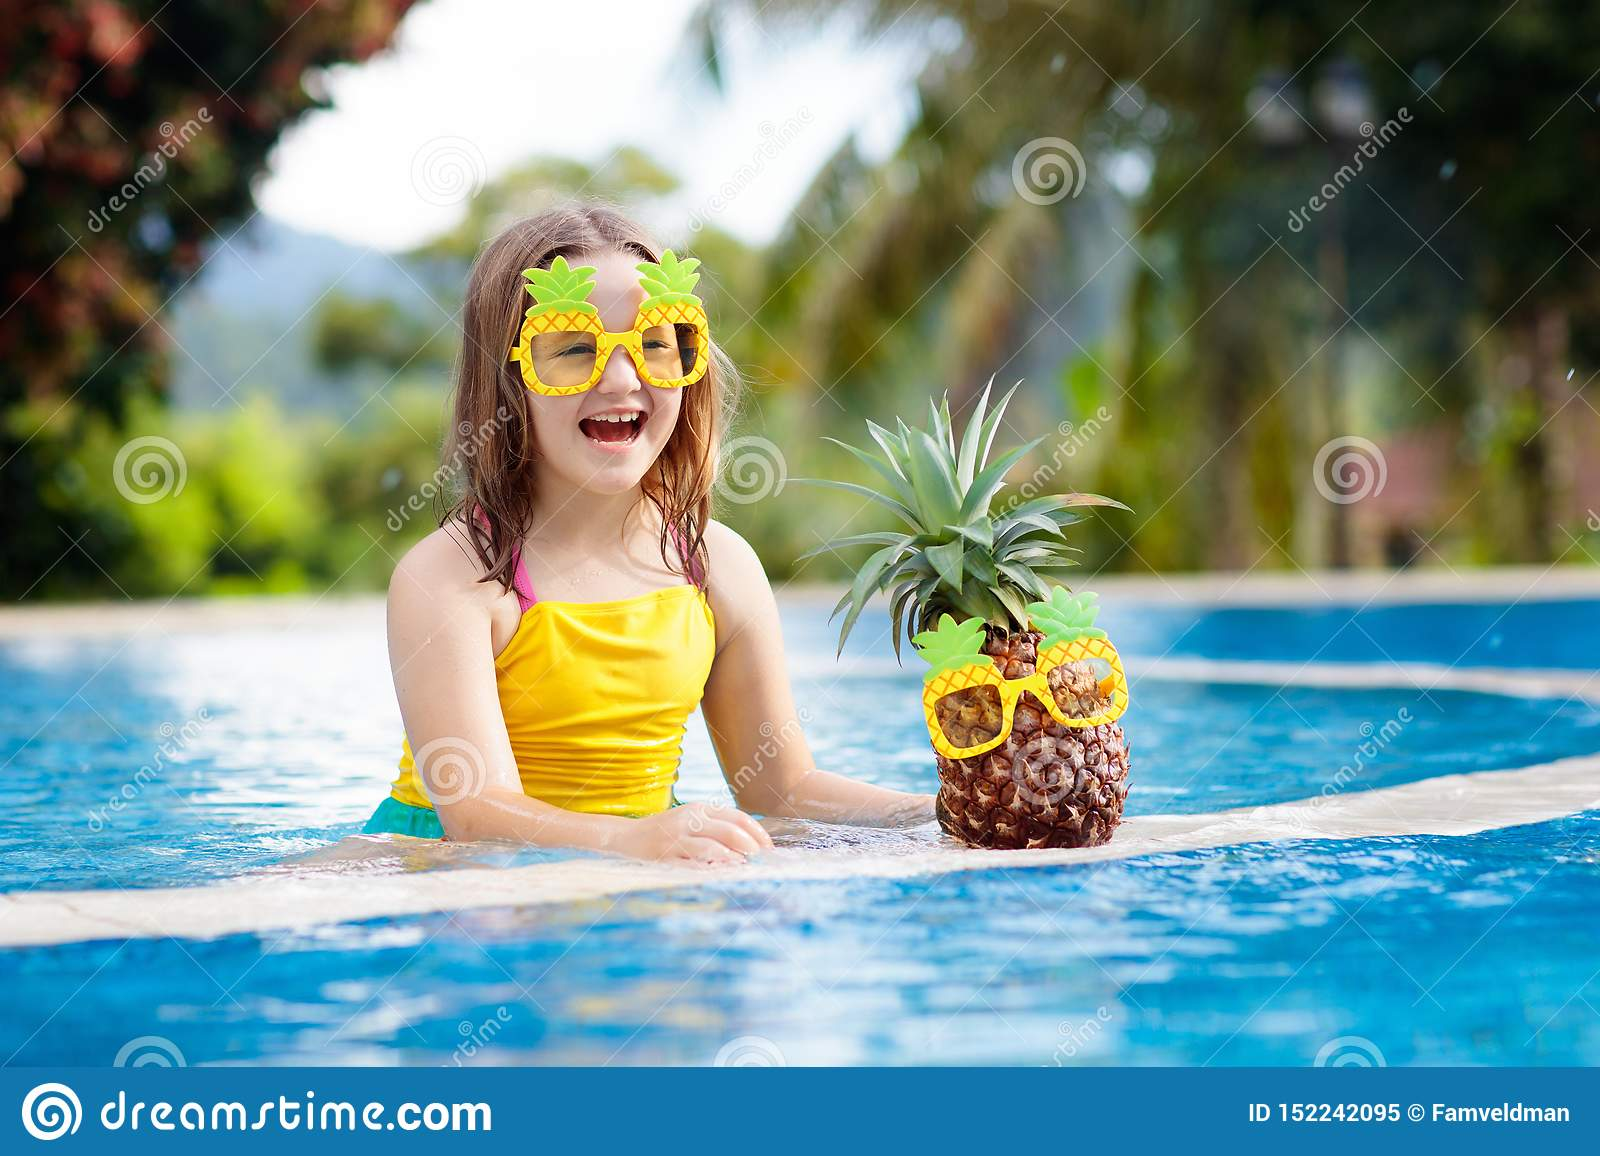 Child with pineapple in swimming pool. Kids swim